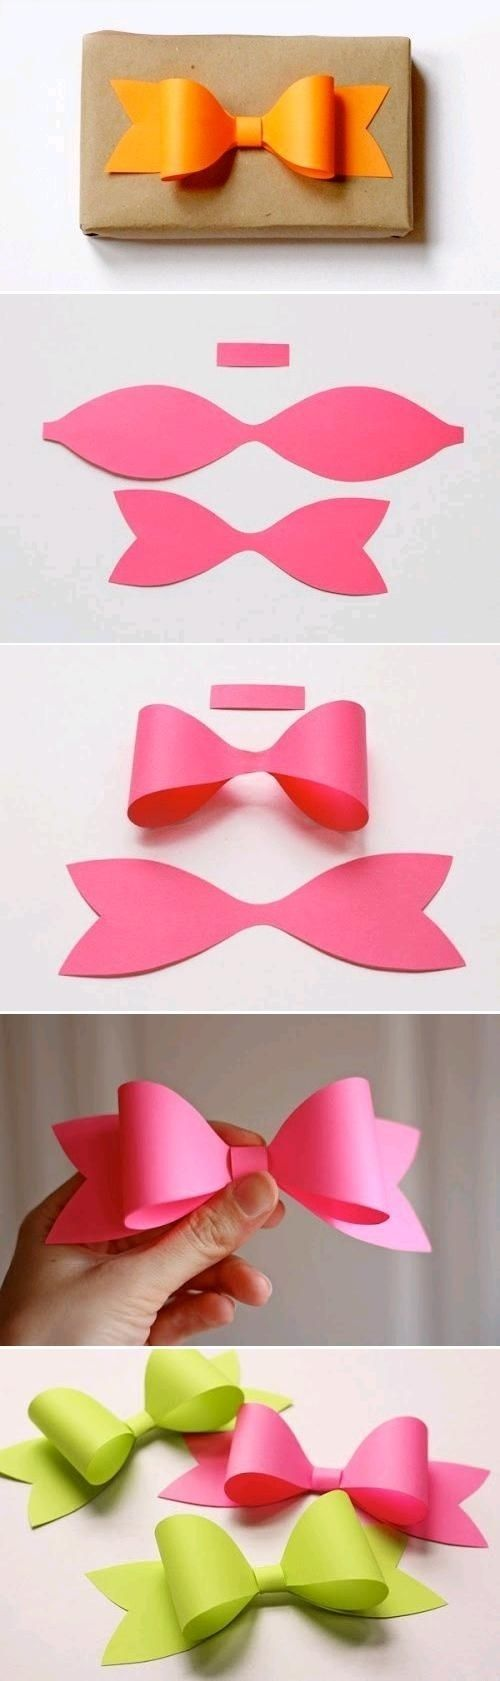 Make a surprisingly EZ bow out of paper. / I've been wrapping pretty and making my own fancy bows for 40+ years, and this technique definitely beats my fancy bows from scratch! Give it a try; you'll love it!